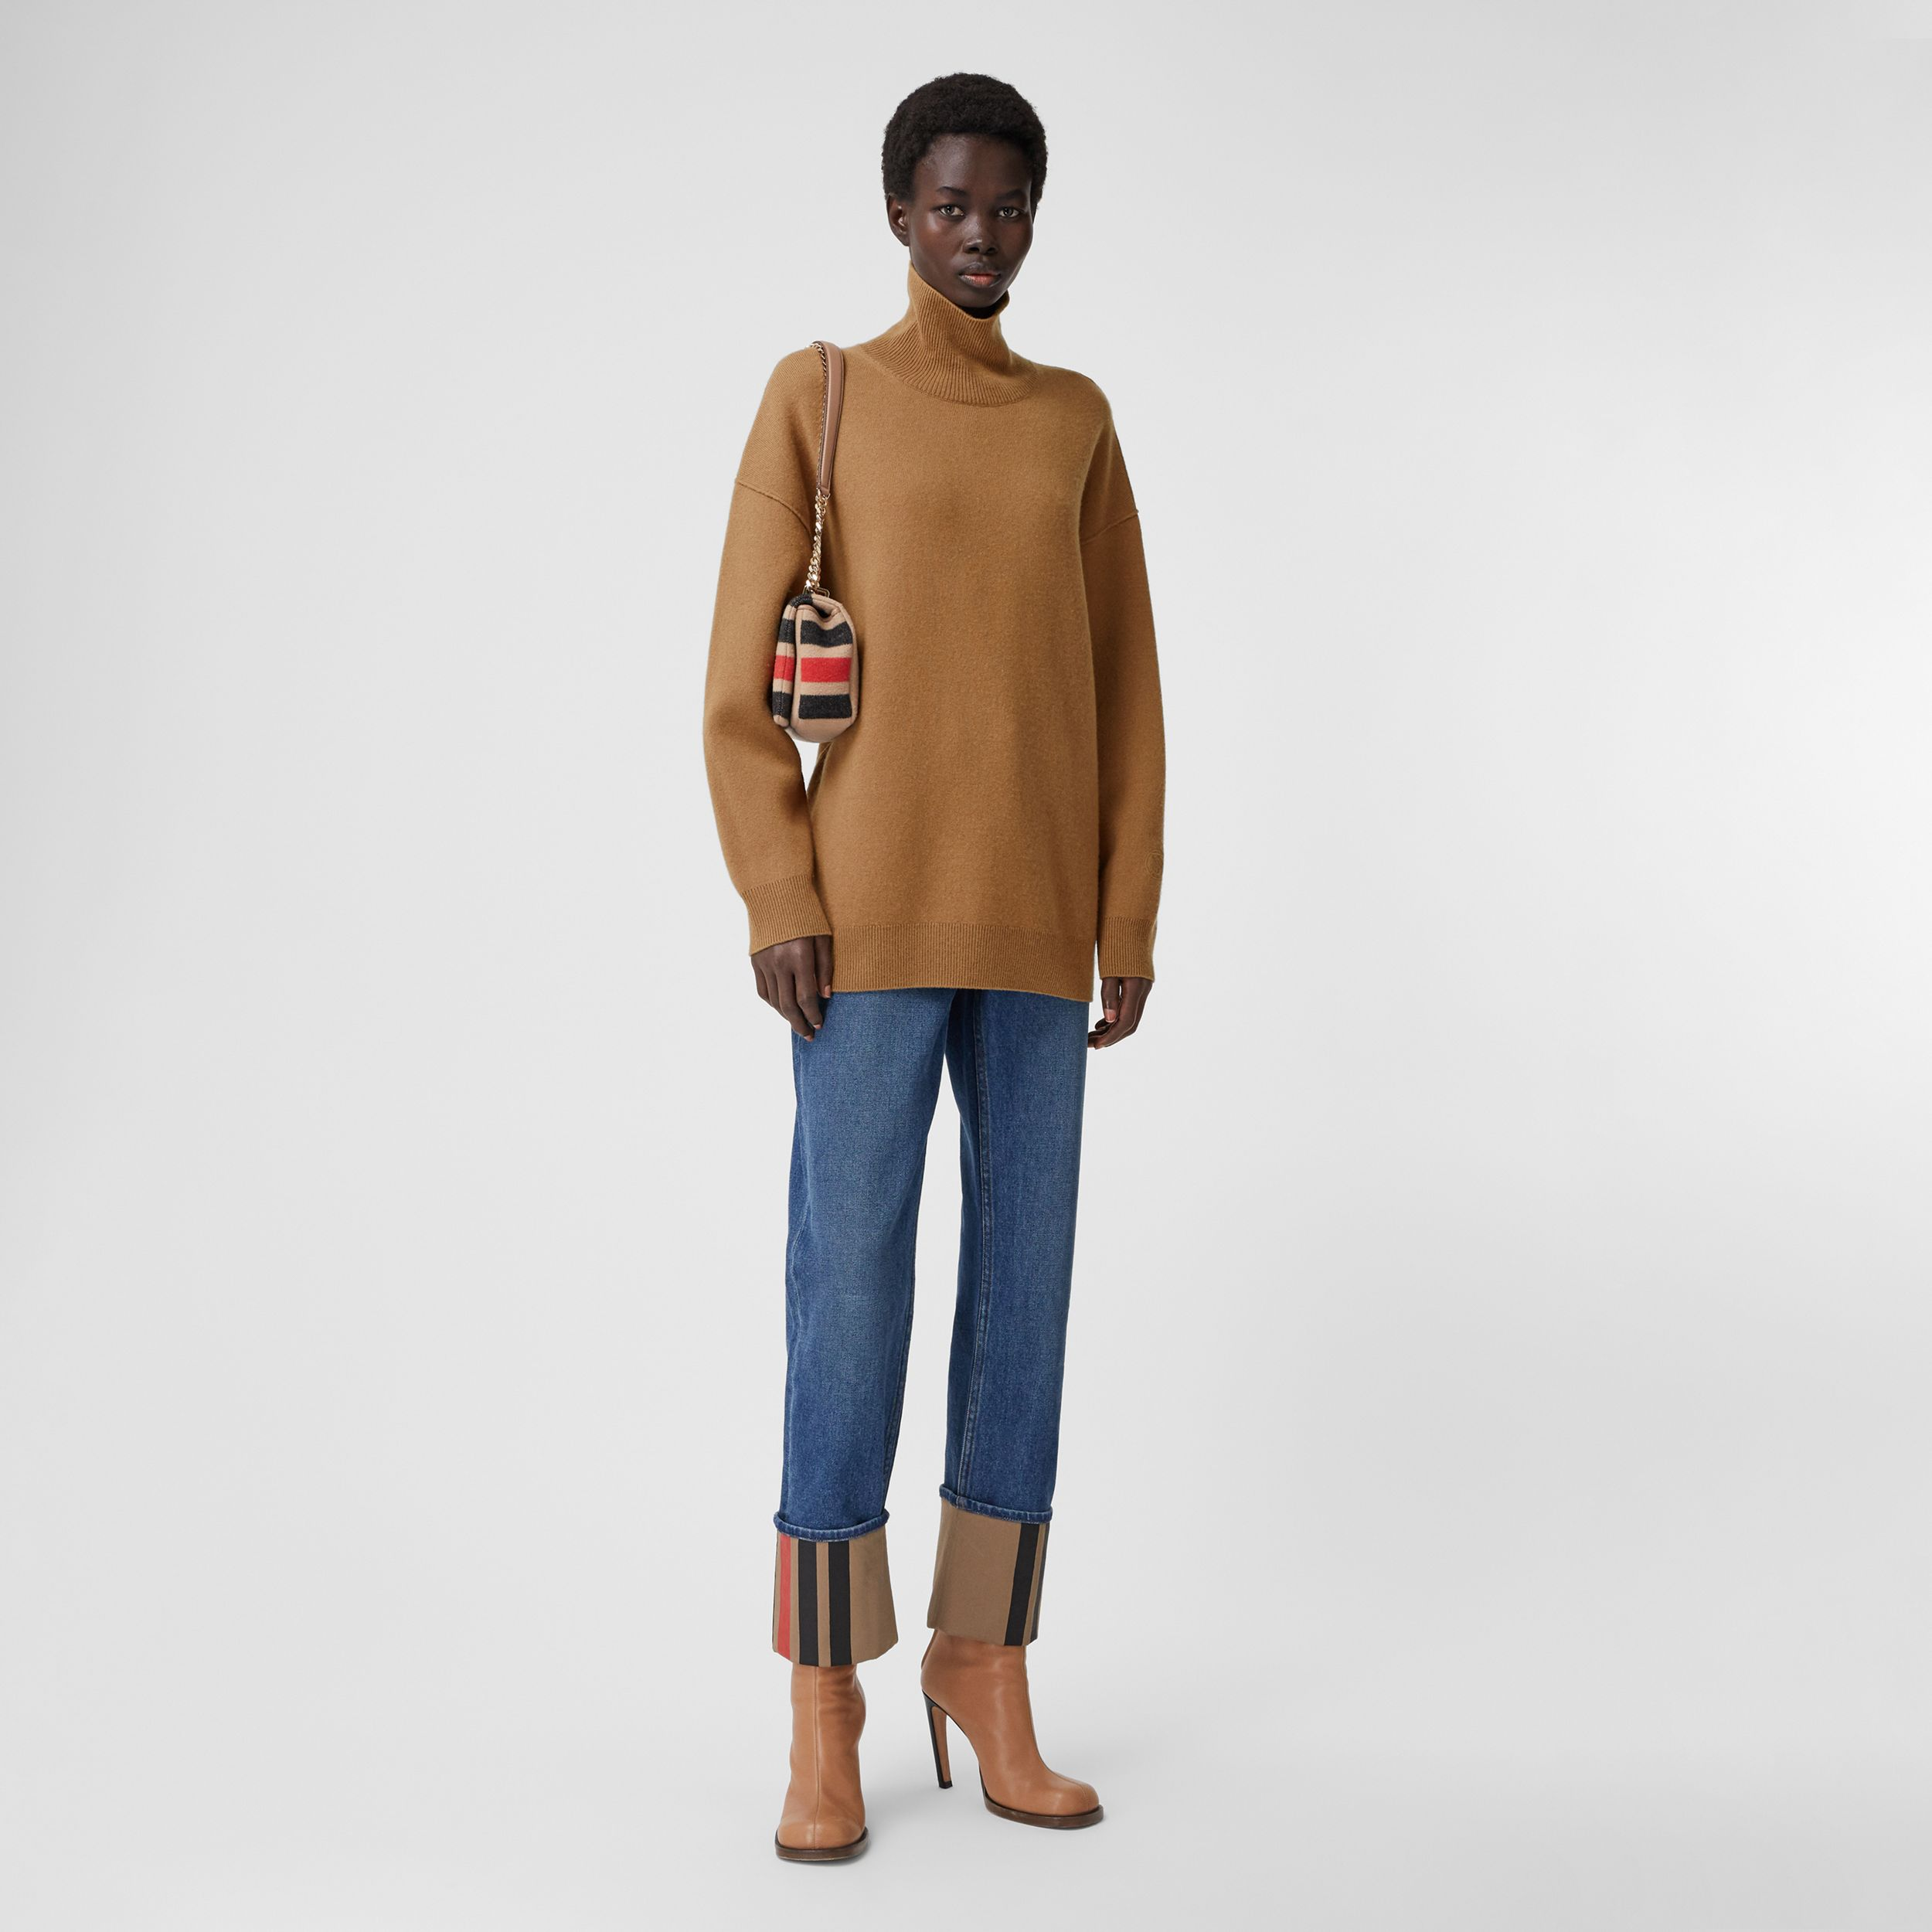 Monogram Motif Cashmere Blend Funnel Neck Sweater in Camel - Women | Burberry - 1